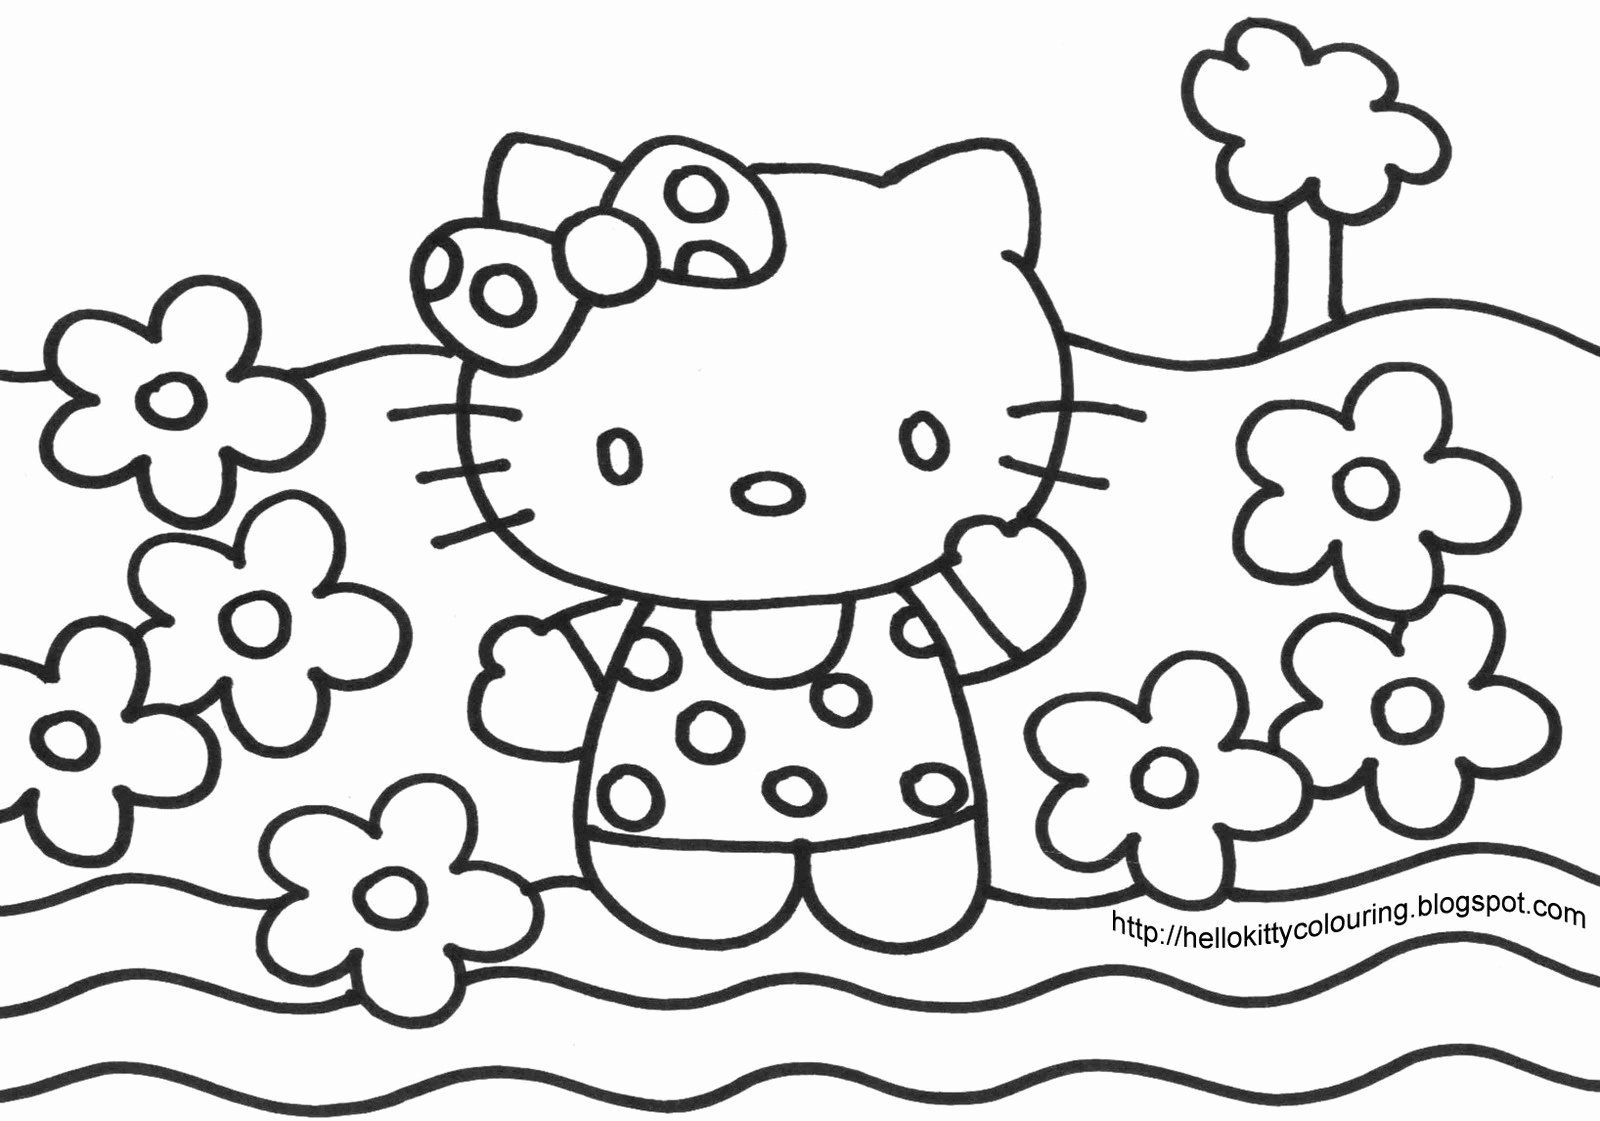 Mythographic Animals Coloring Book Inspirational Coloring Pages Princess Hello Kitty Coloring B Hello Kitty Coloring Kitty Coloring Hello Kitty Colouring Pages